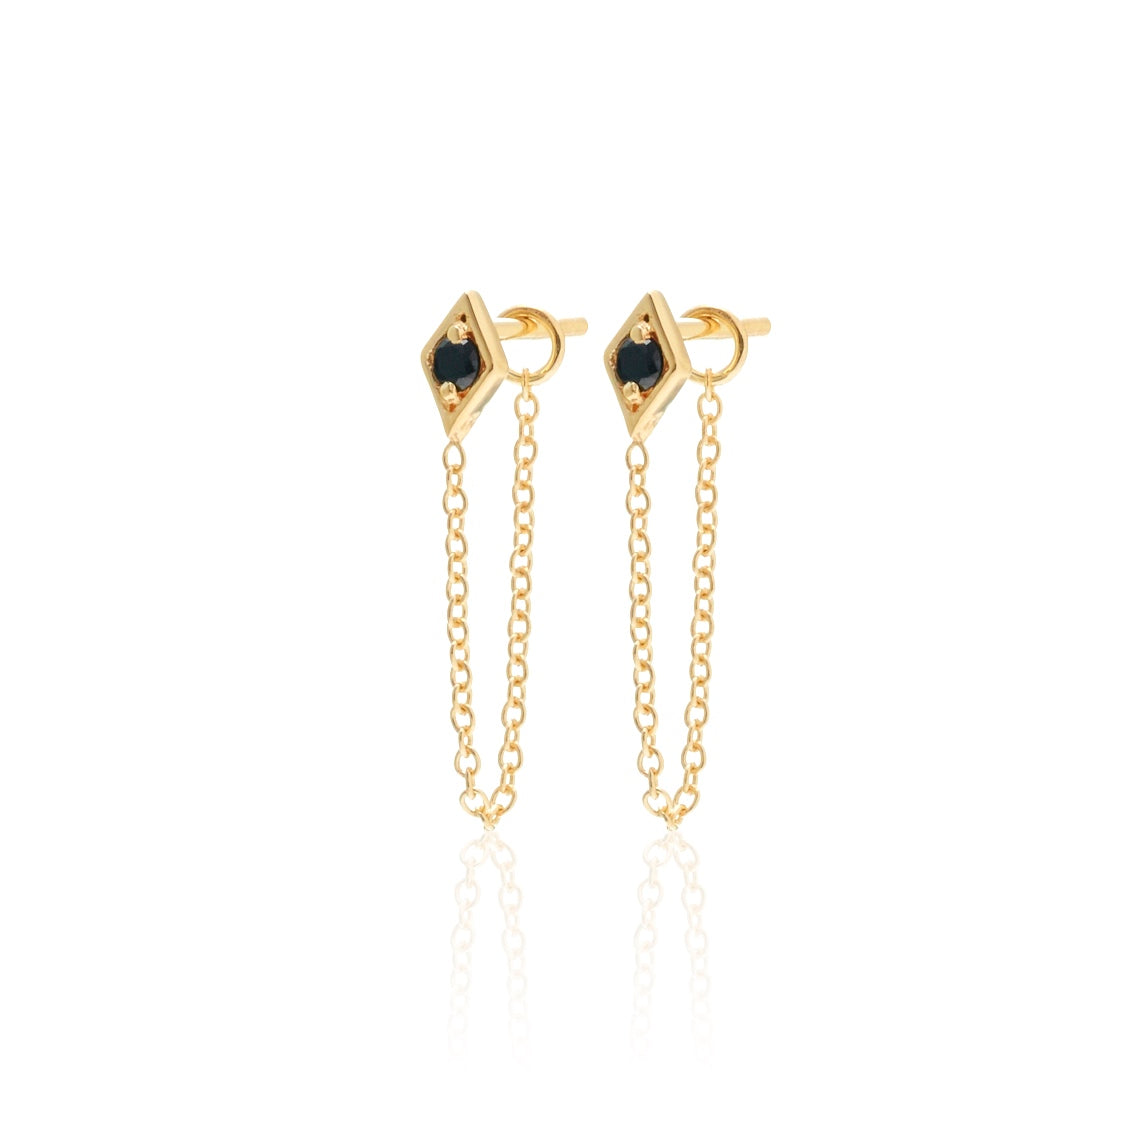 Silk & Steel Superfine Gold Black Spinel Connected Chain Earrings